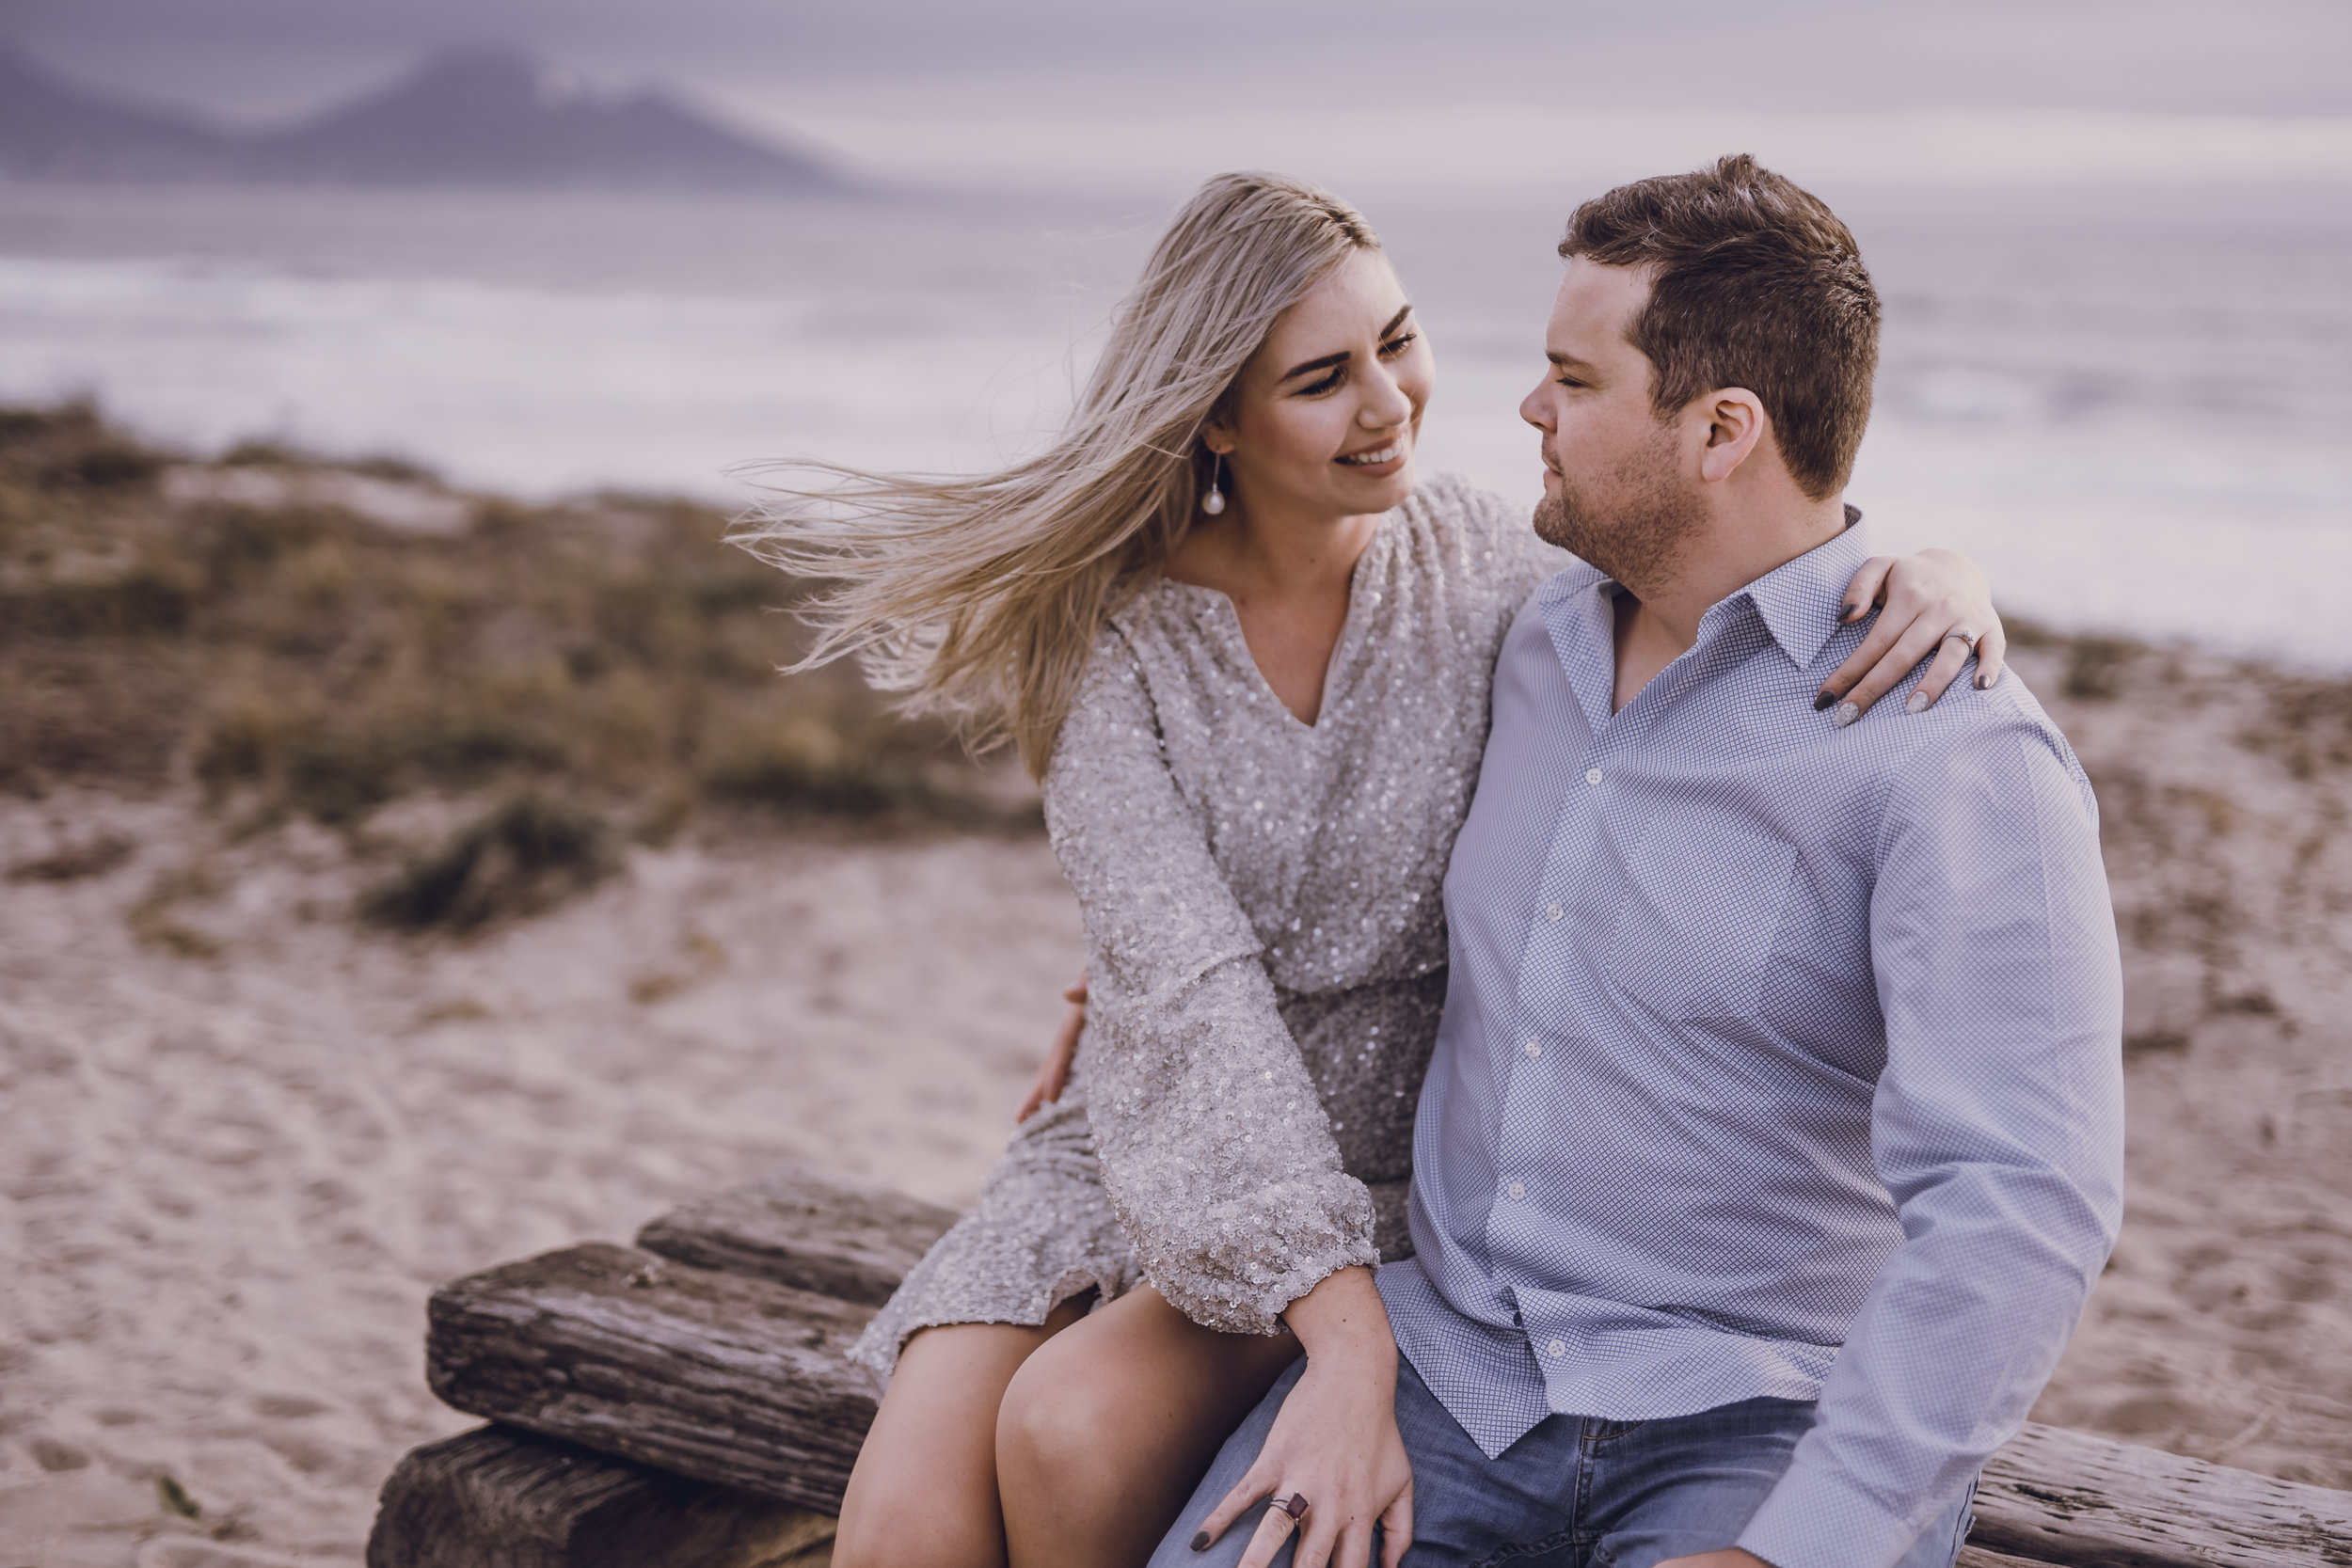 Odelya and Ralph - Cape Town Couples Beach_Seaside Photo session by Cape Image Co. (Large Files)-3.jpg